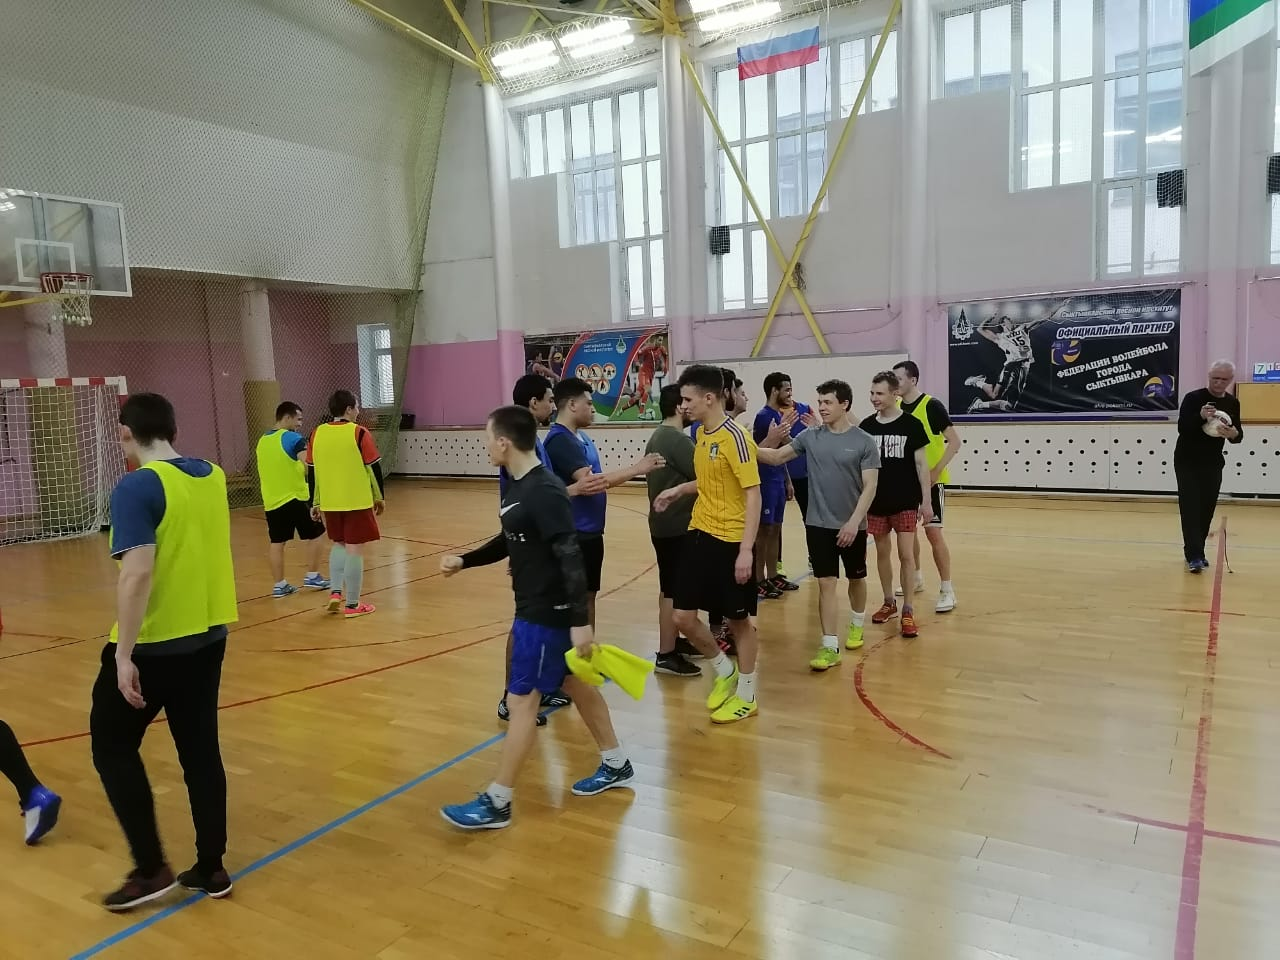 Pitirim Sorokin Syktyvkar State University foreign students played football with the team of Syktyvkar Forest Institute